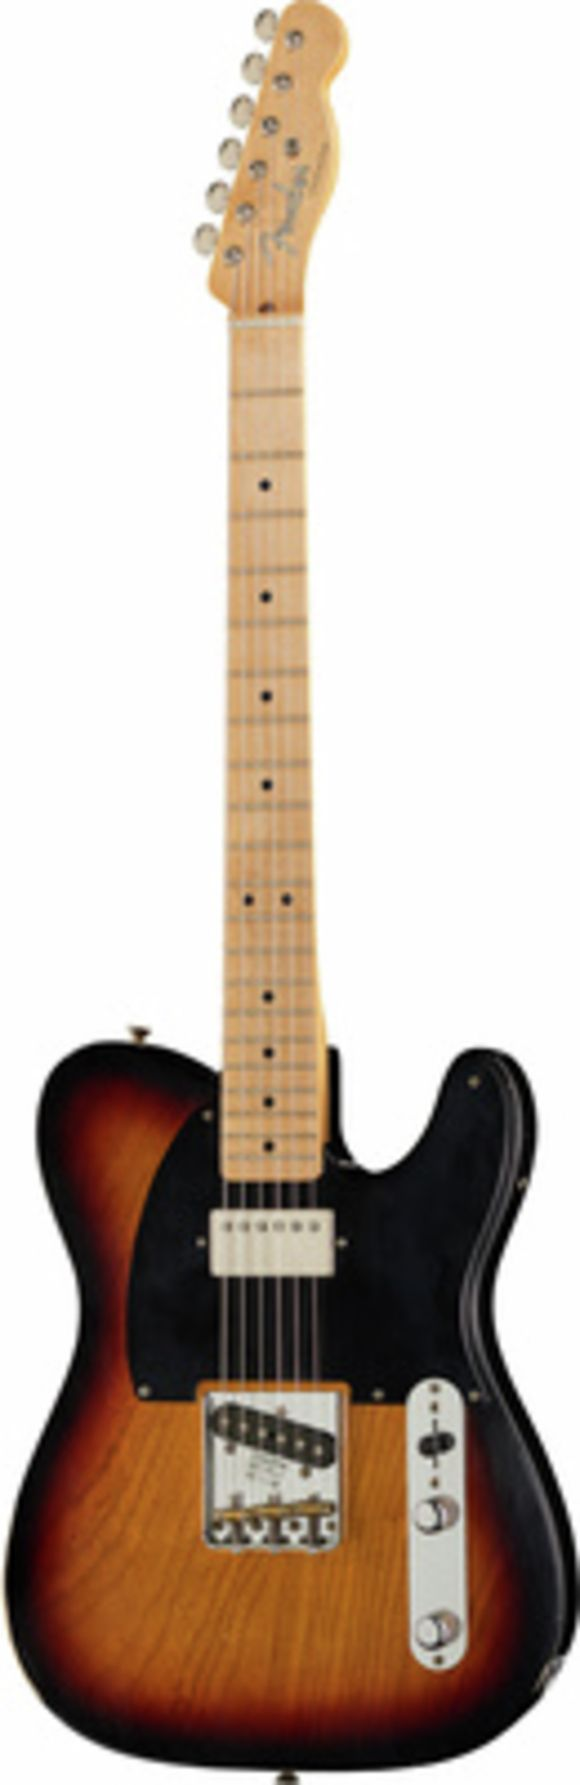 Road Worn Telecaster SE 3T Fender